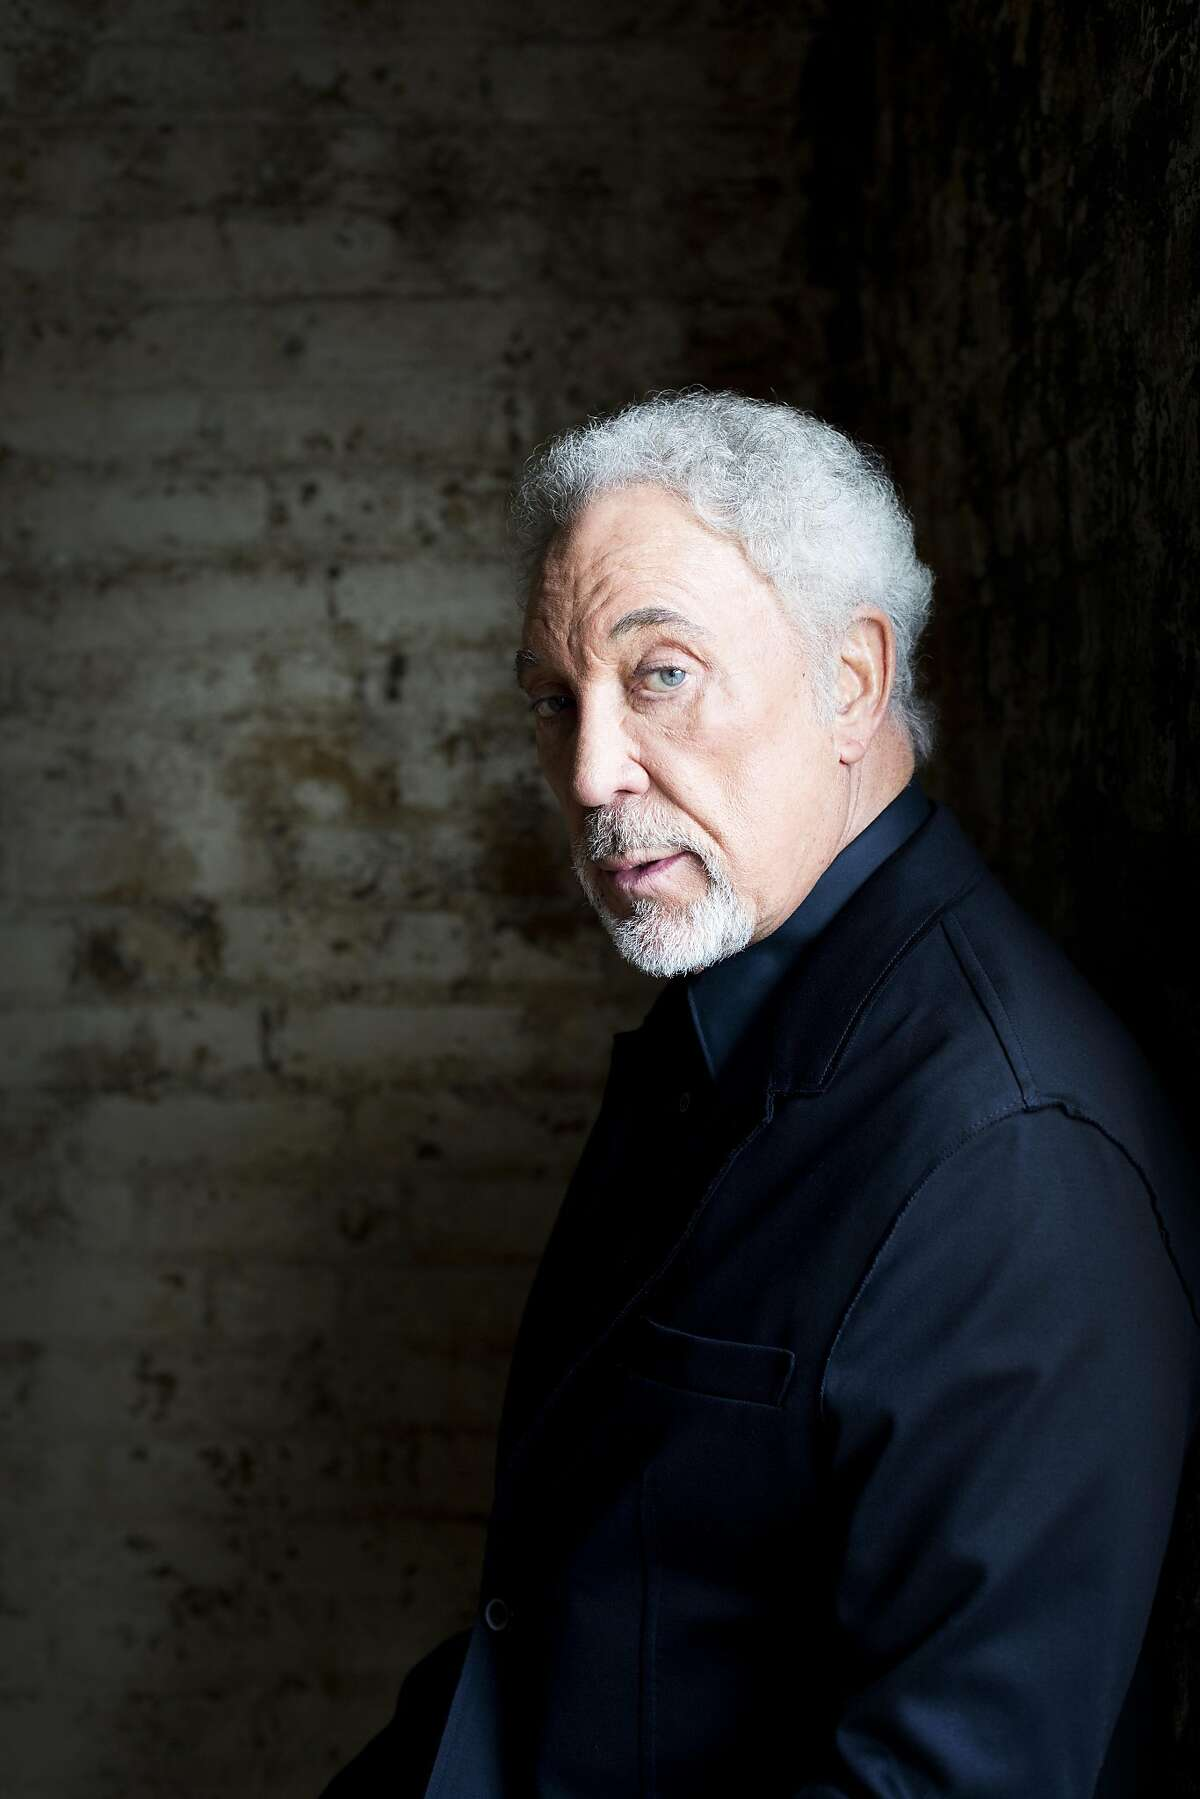 At 76 years old, Tom Jones continues to perform.